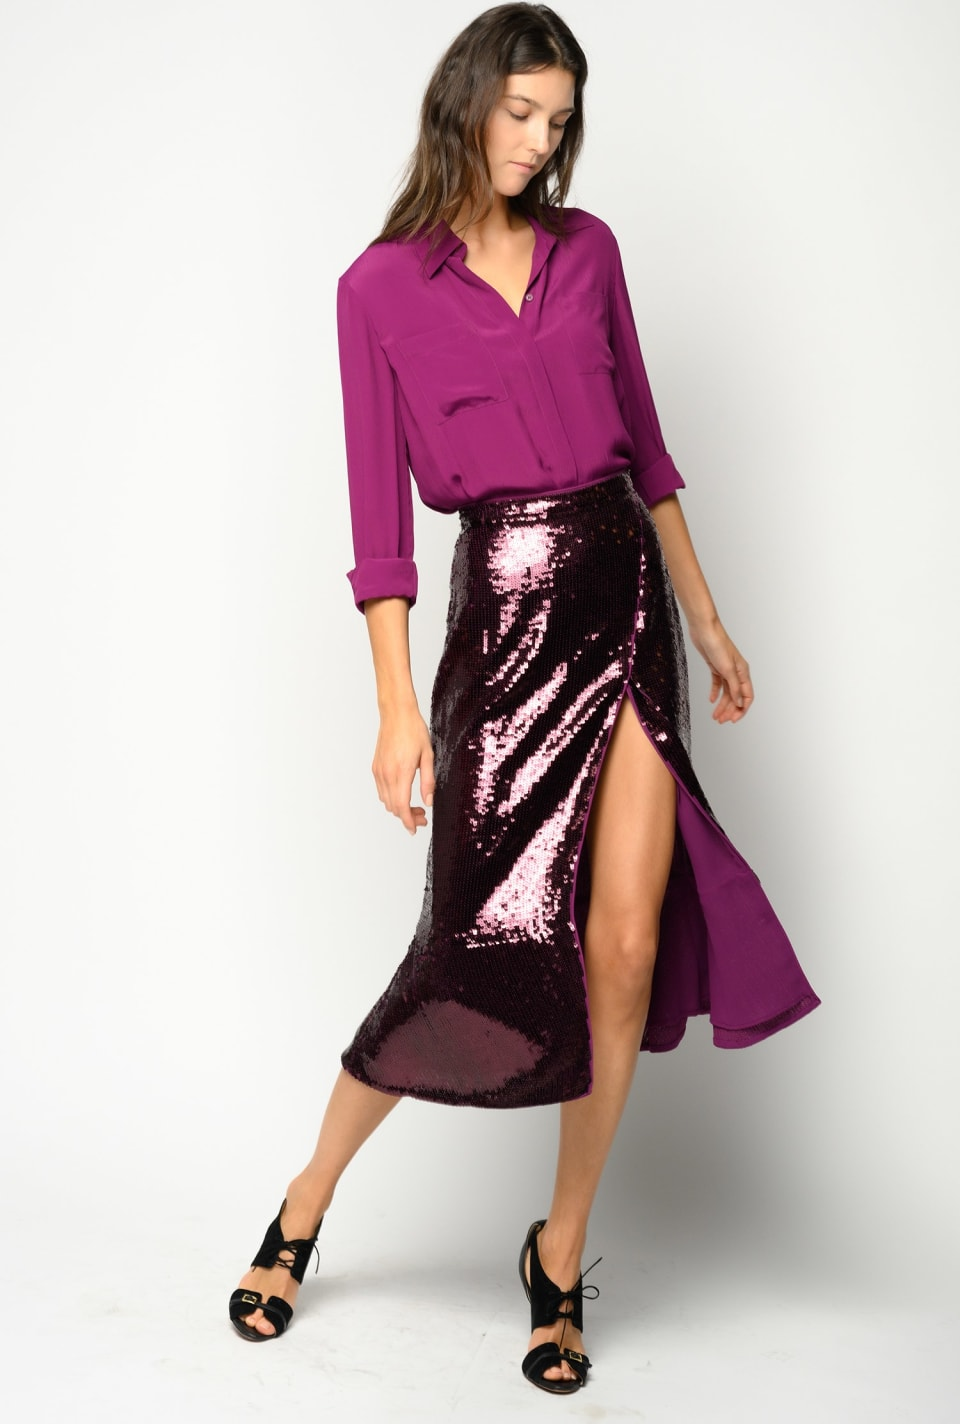 Mid-calf skirt covered with square sequins - Pinko